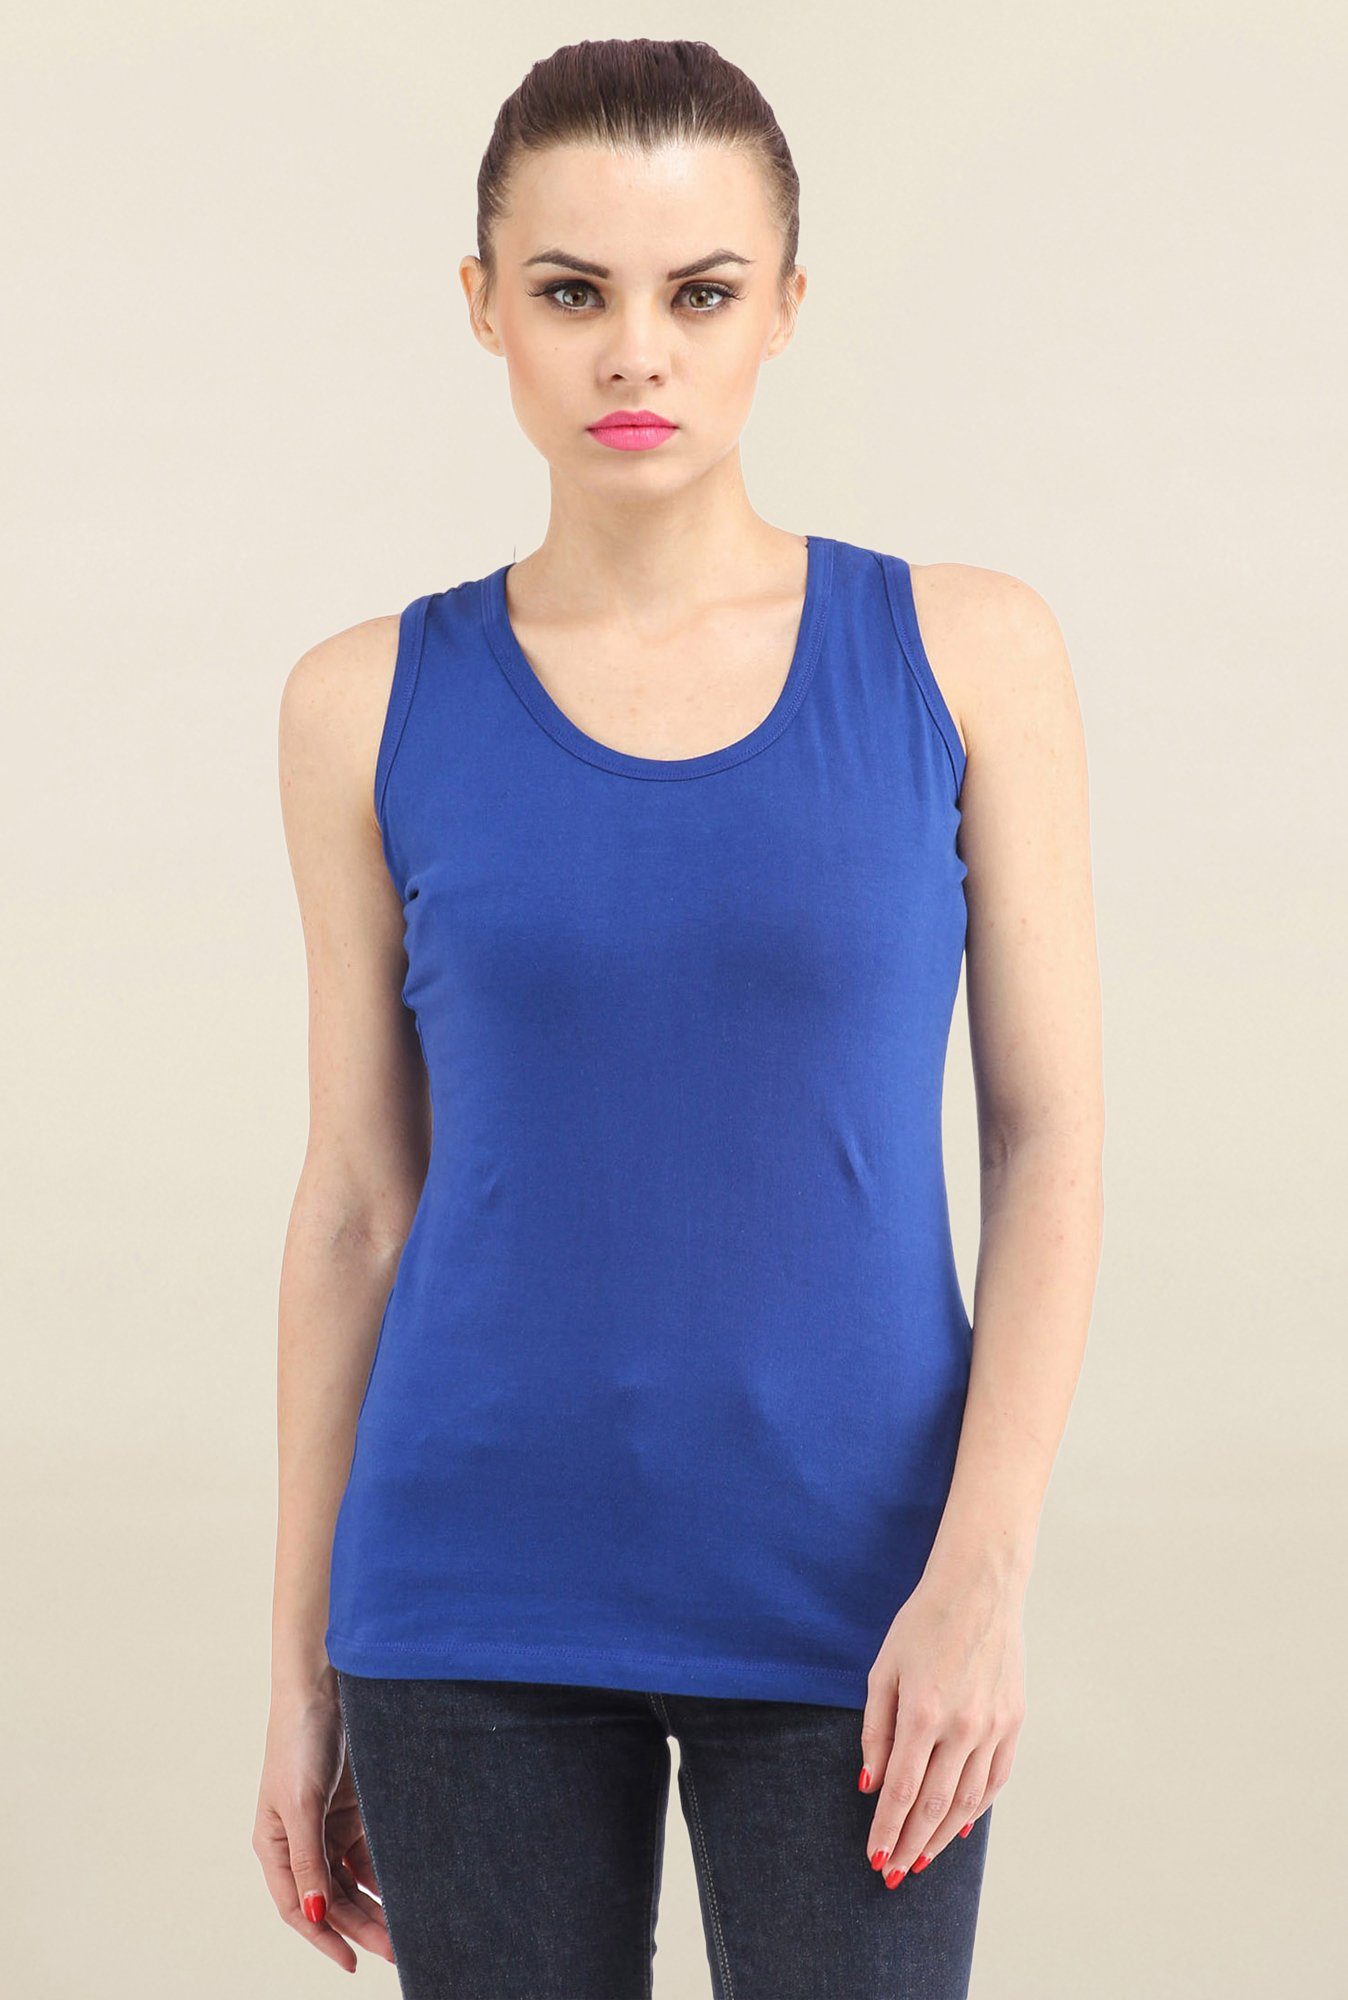 e58e8d861216bf Buy Cation Blue Solid Tank Top for Women Online   Tata CLiQ